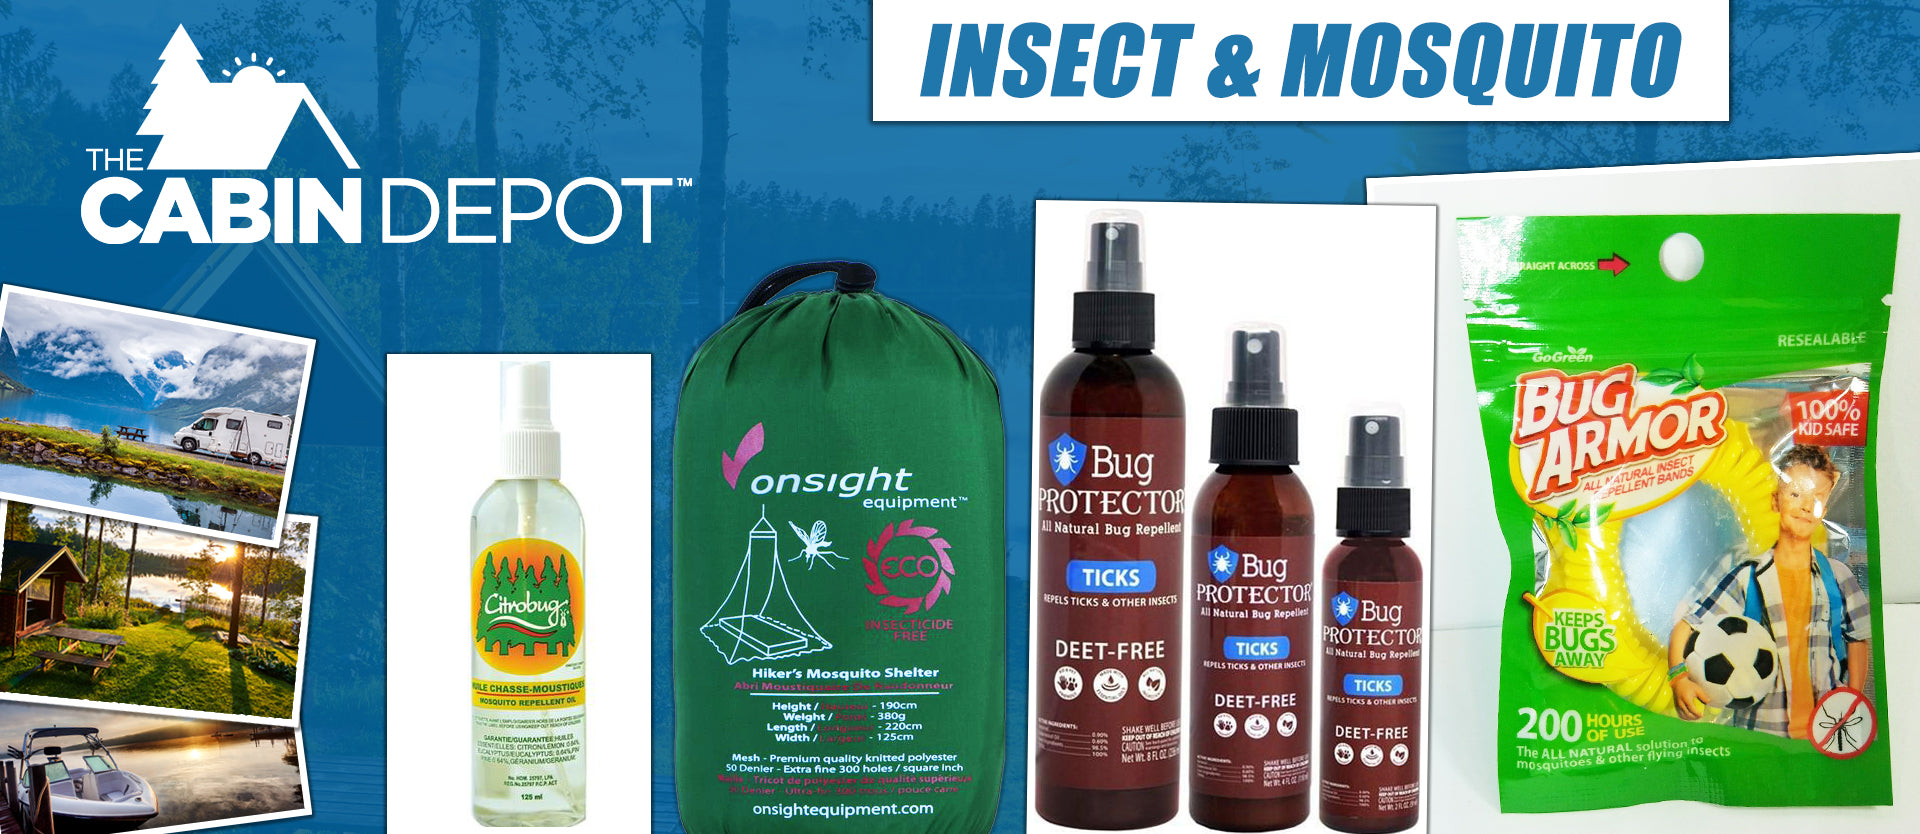 Mosquito Insect Control The Cabin Depot™